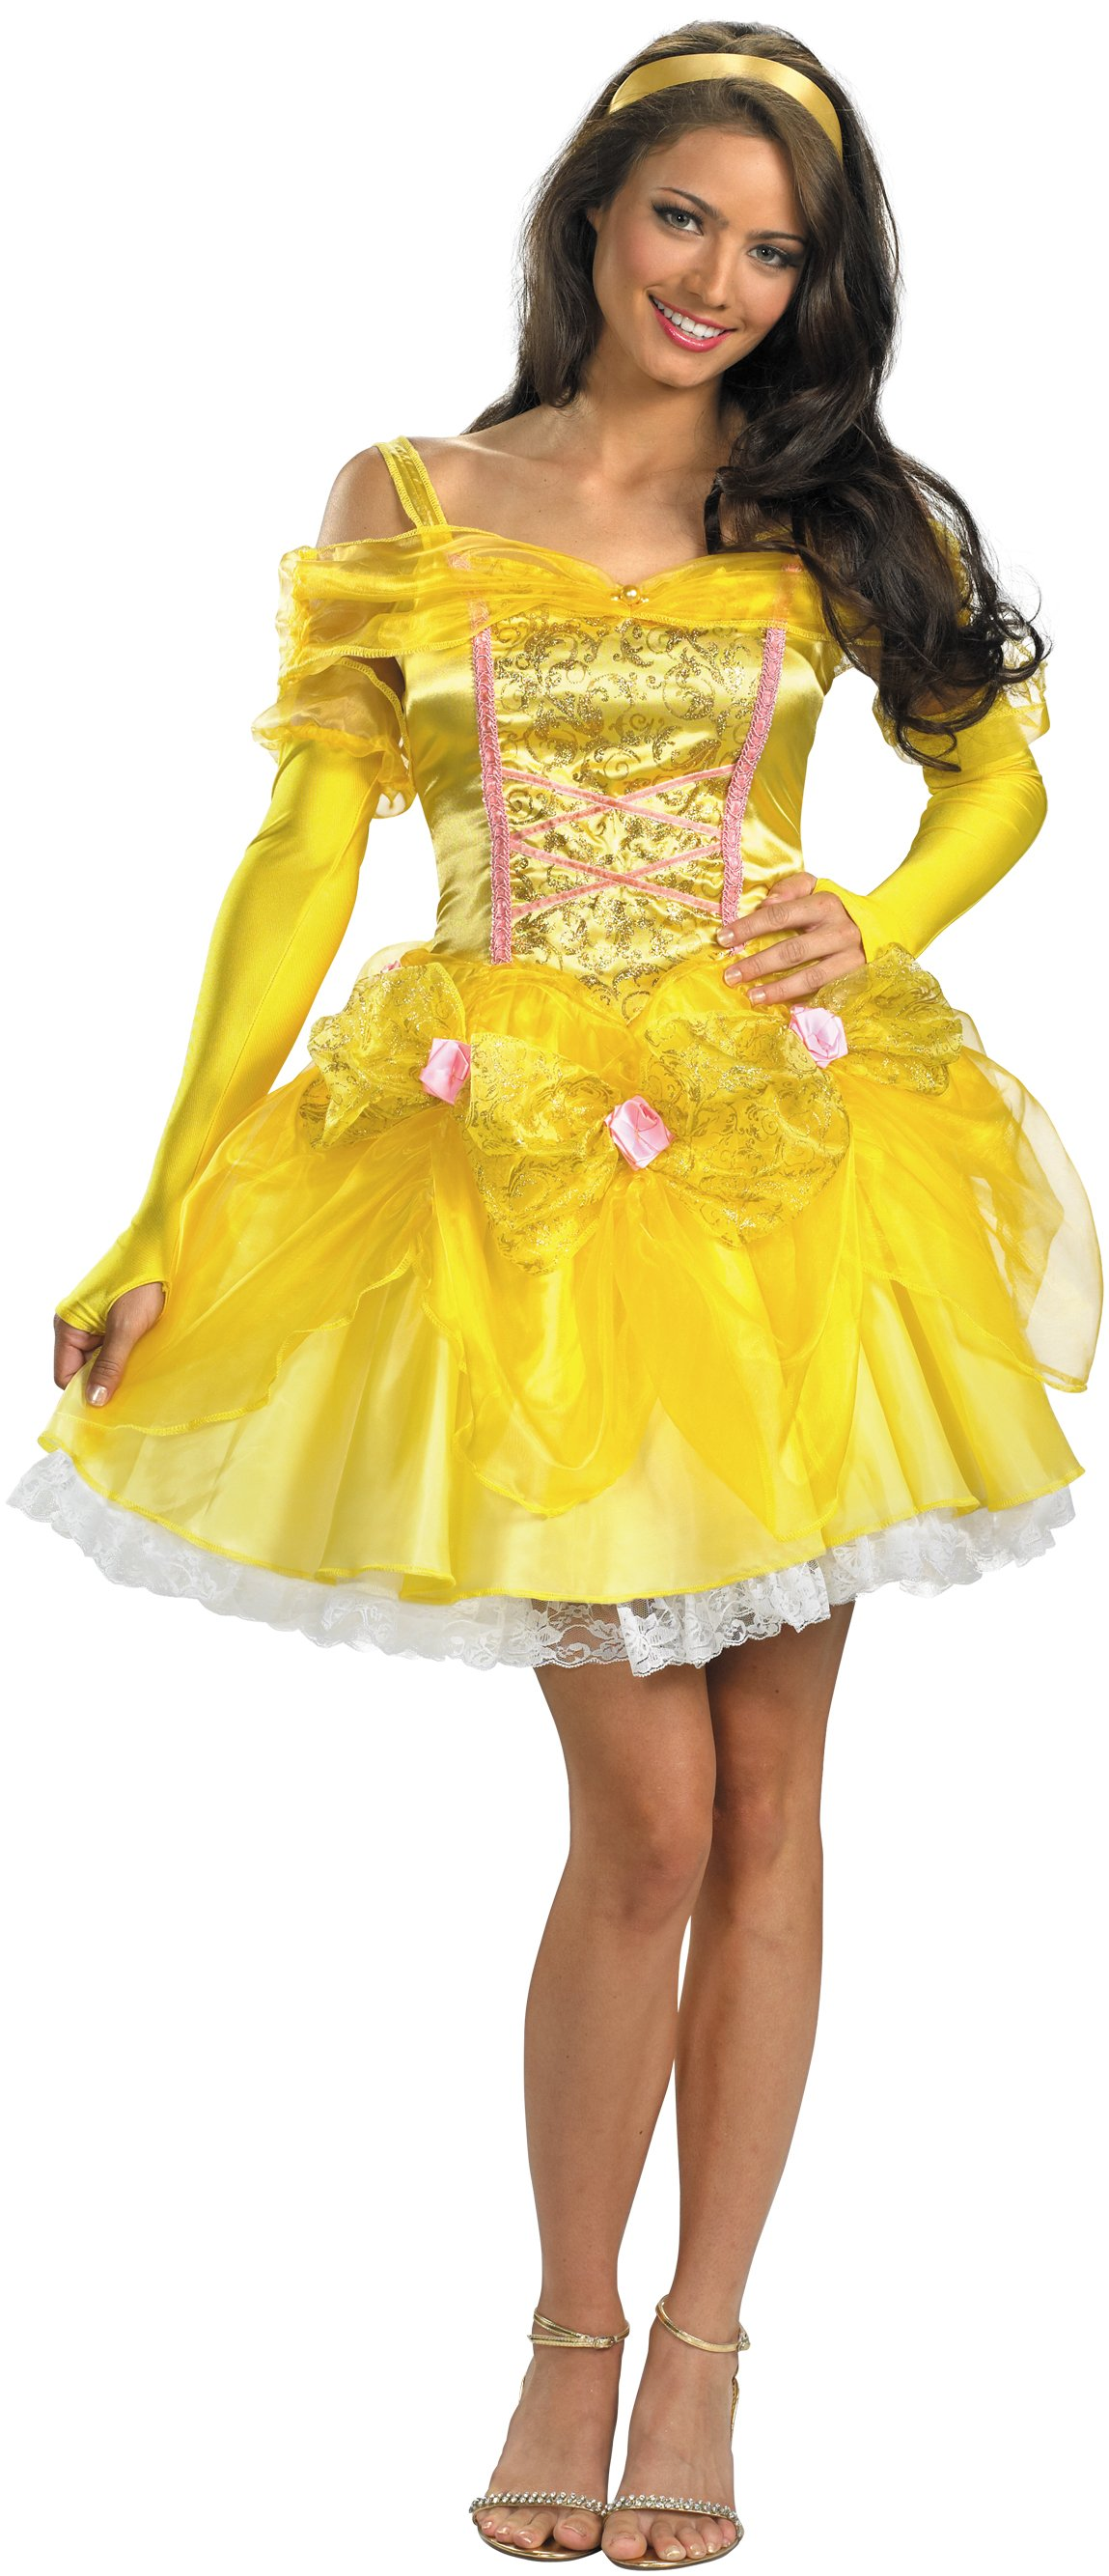 Beauty And The Beast - Sassy Belle Adult Costume